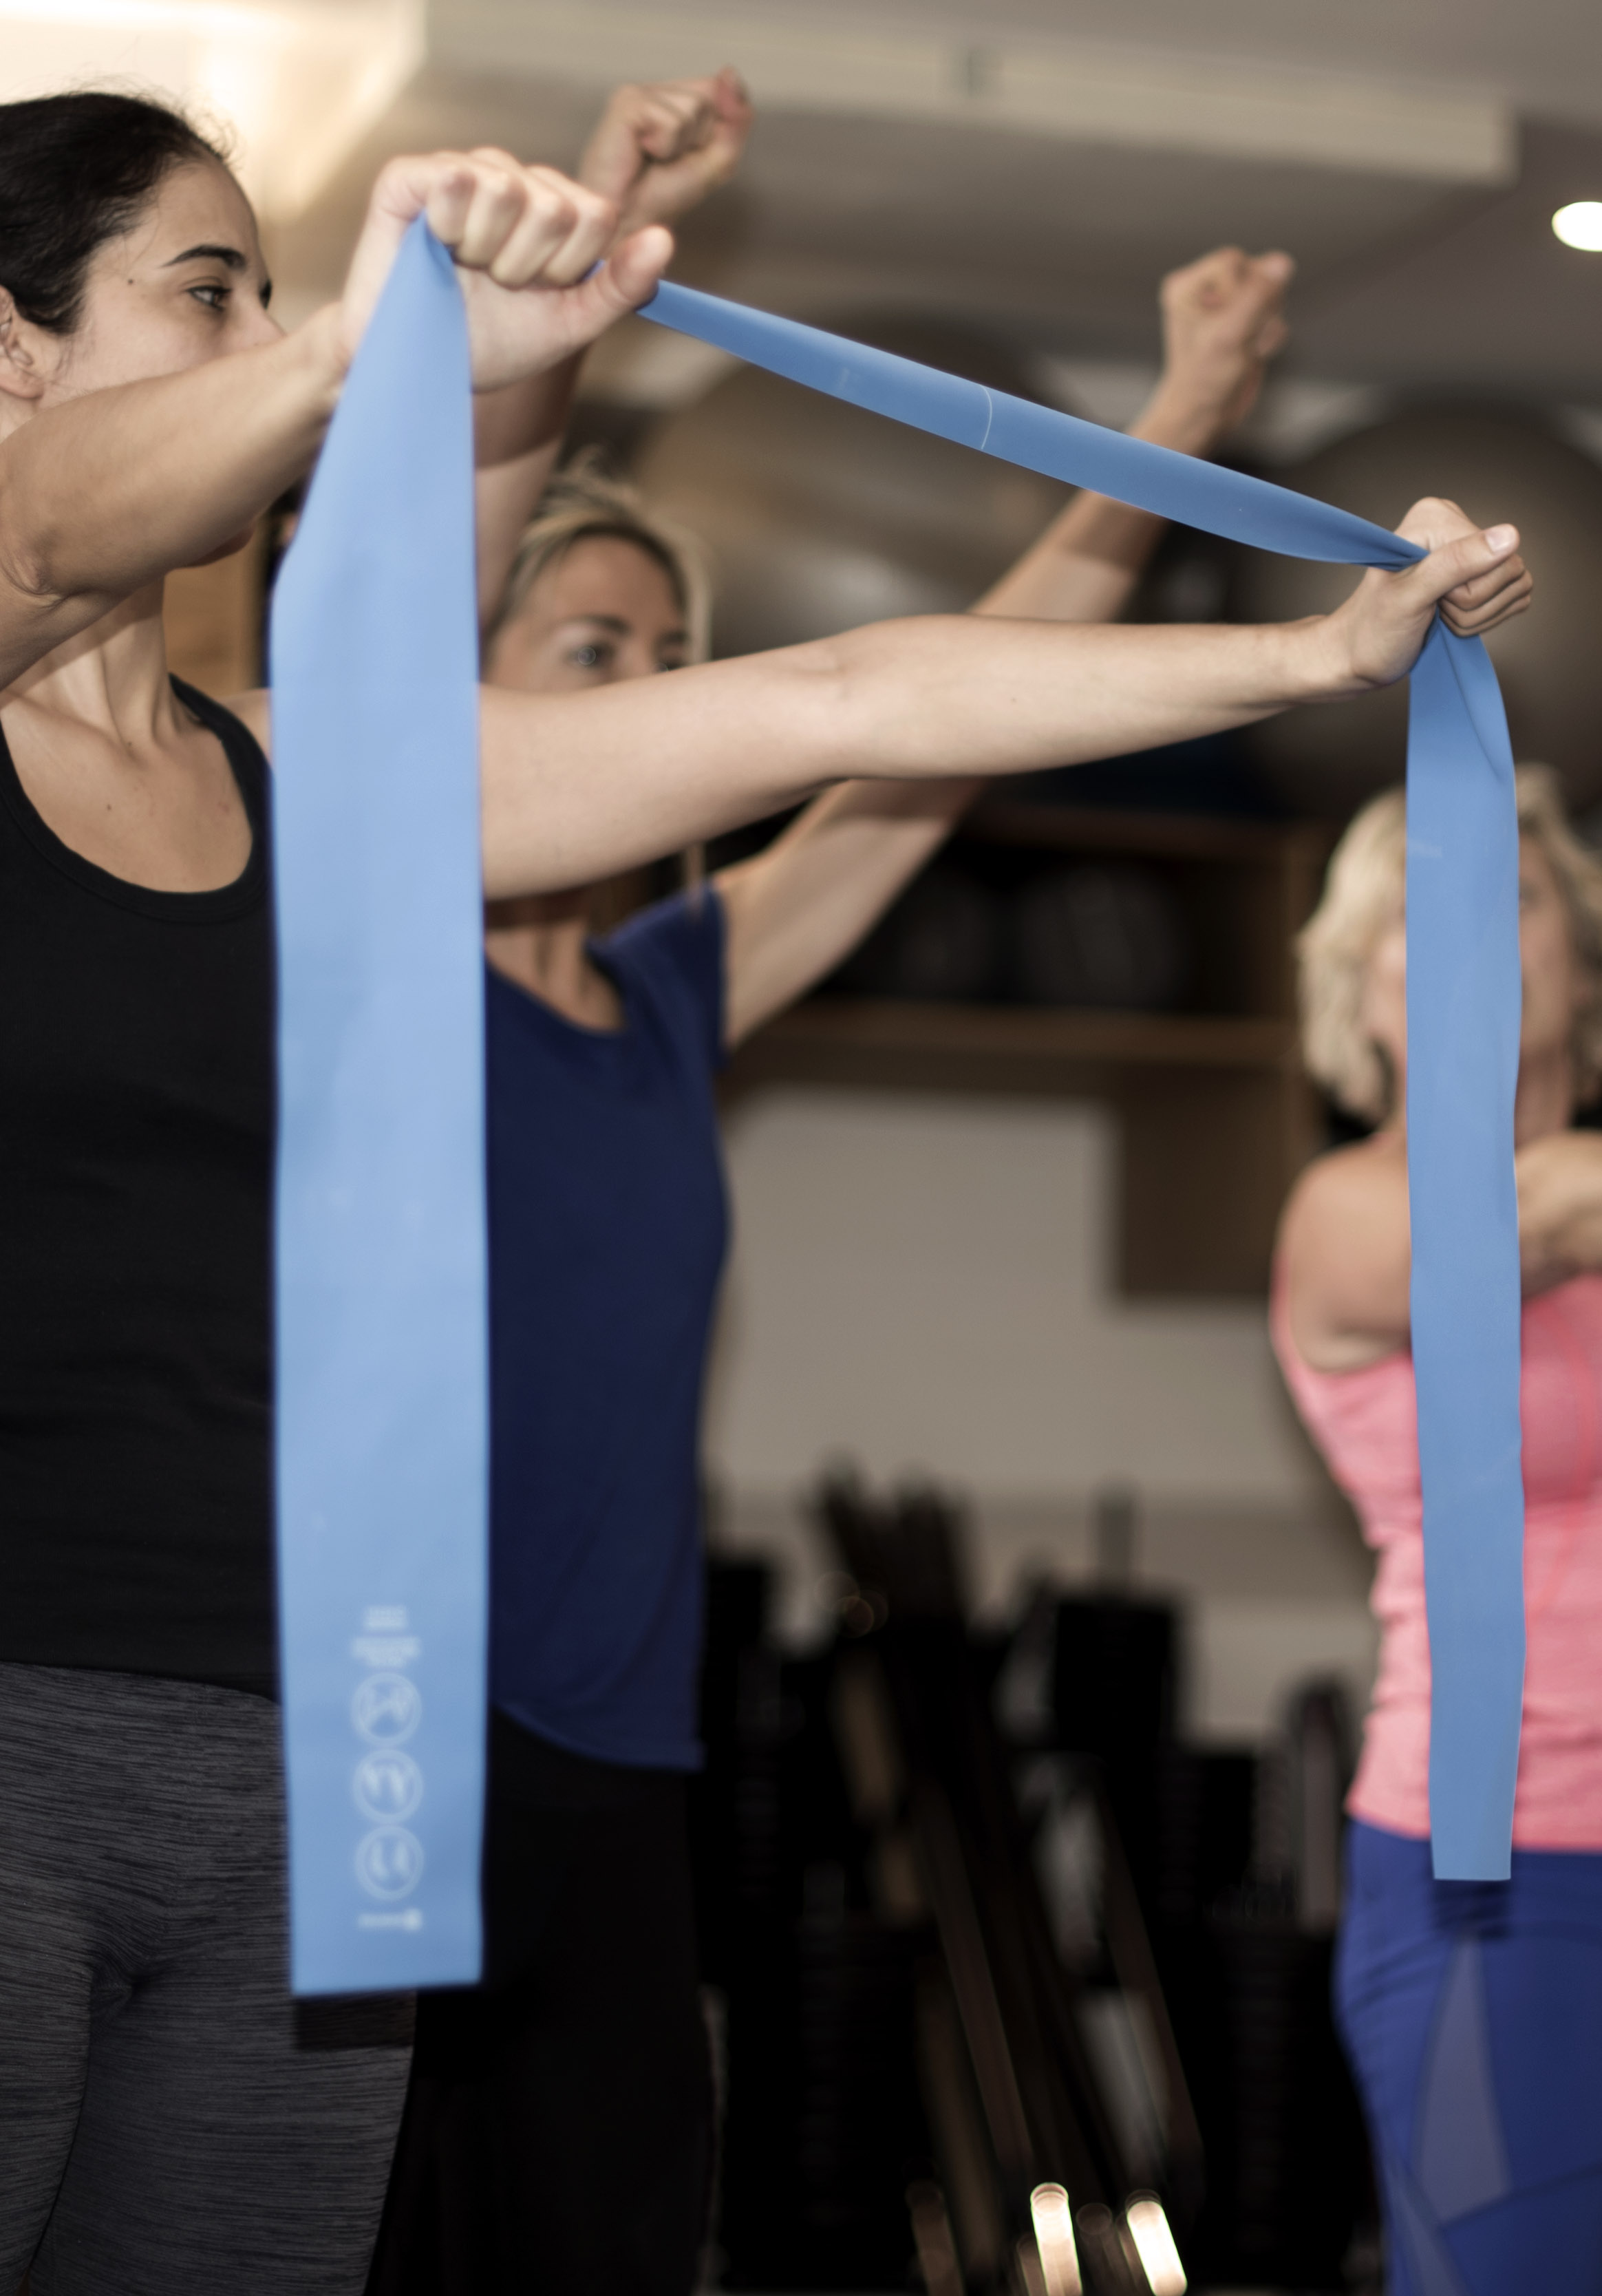 Holistic Core and Restore Course Exercises with Equipment